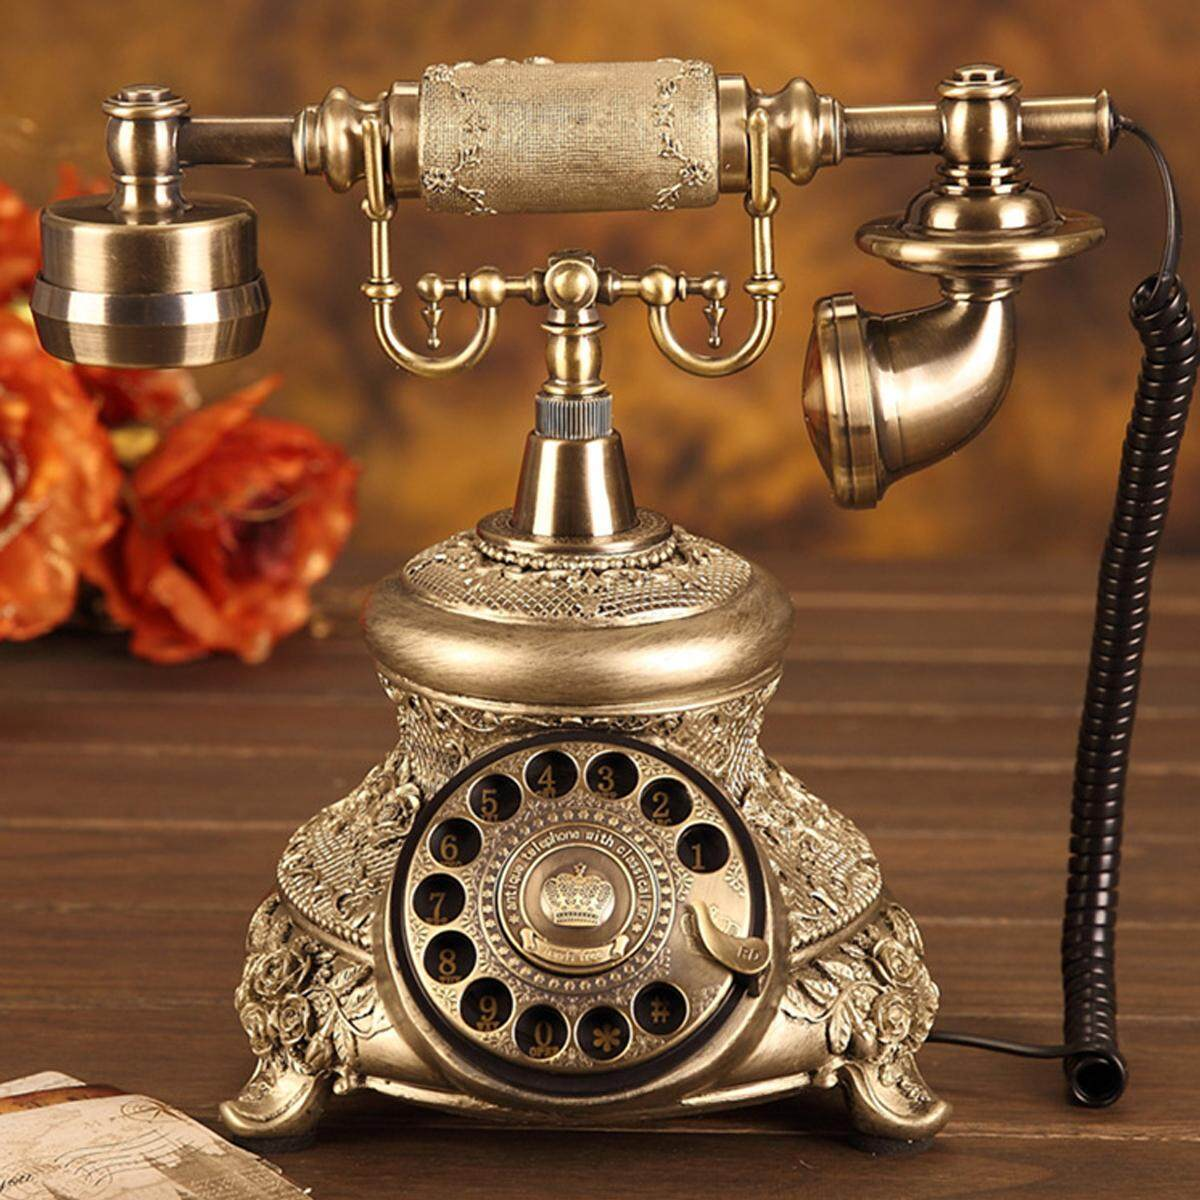 Old fashioned french phone